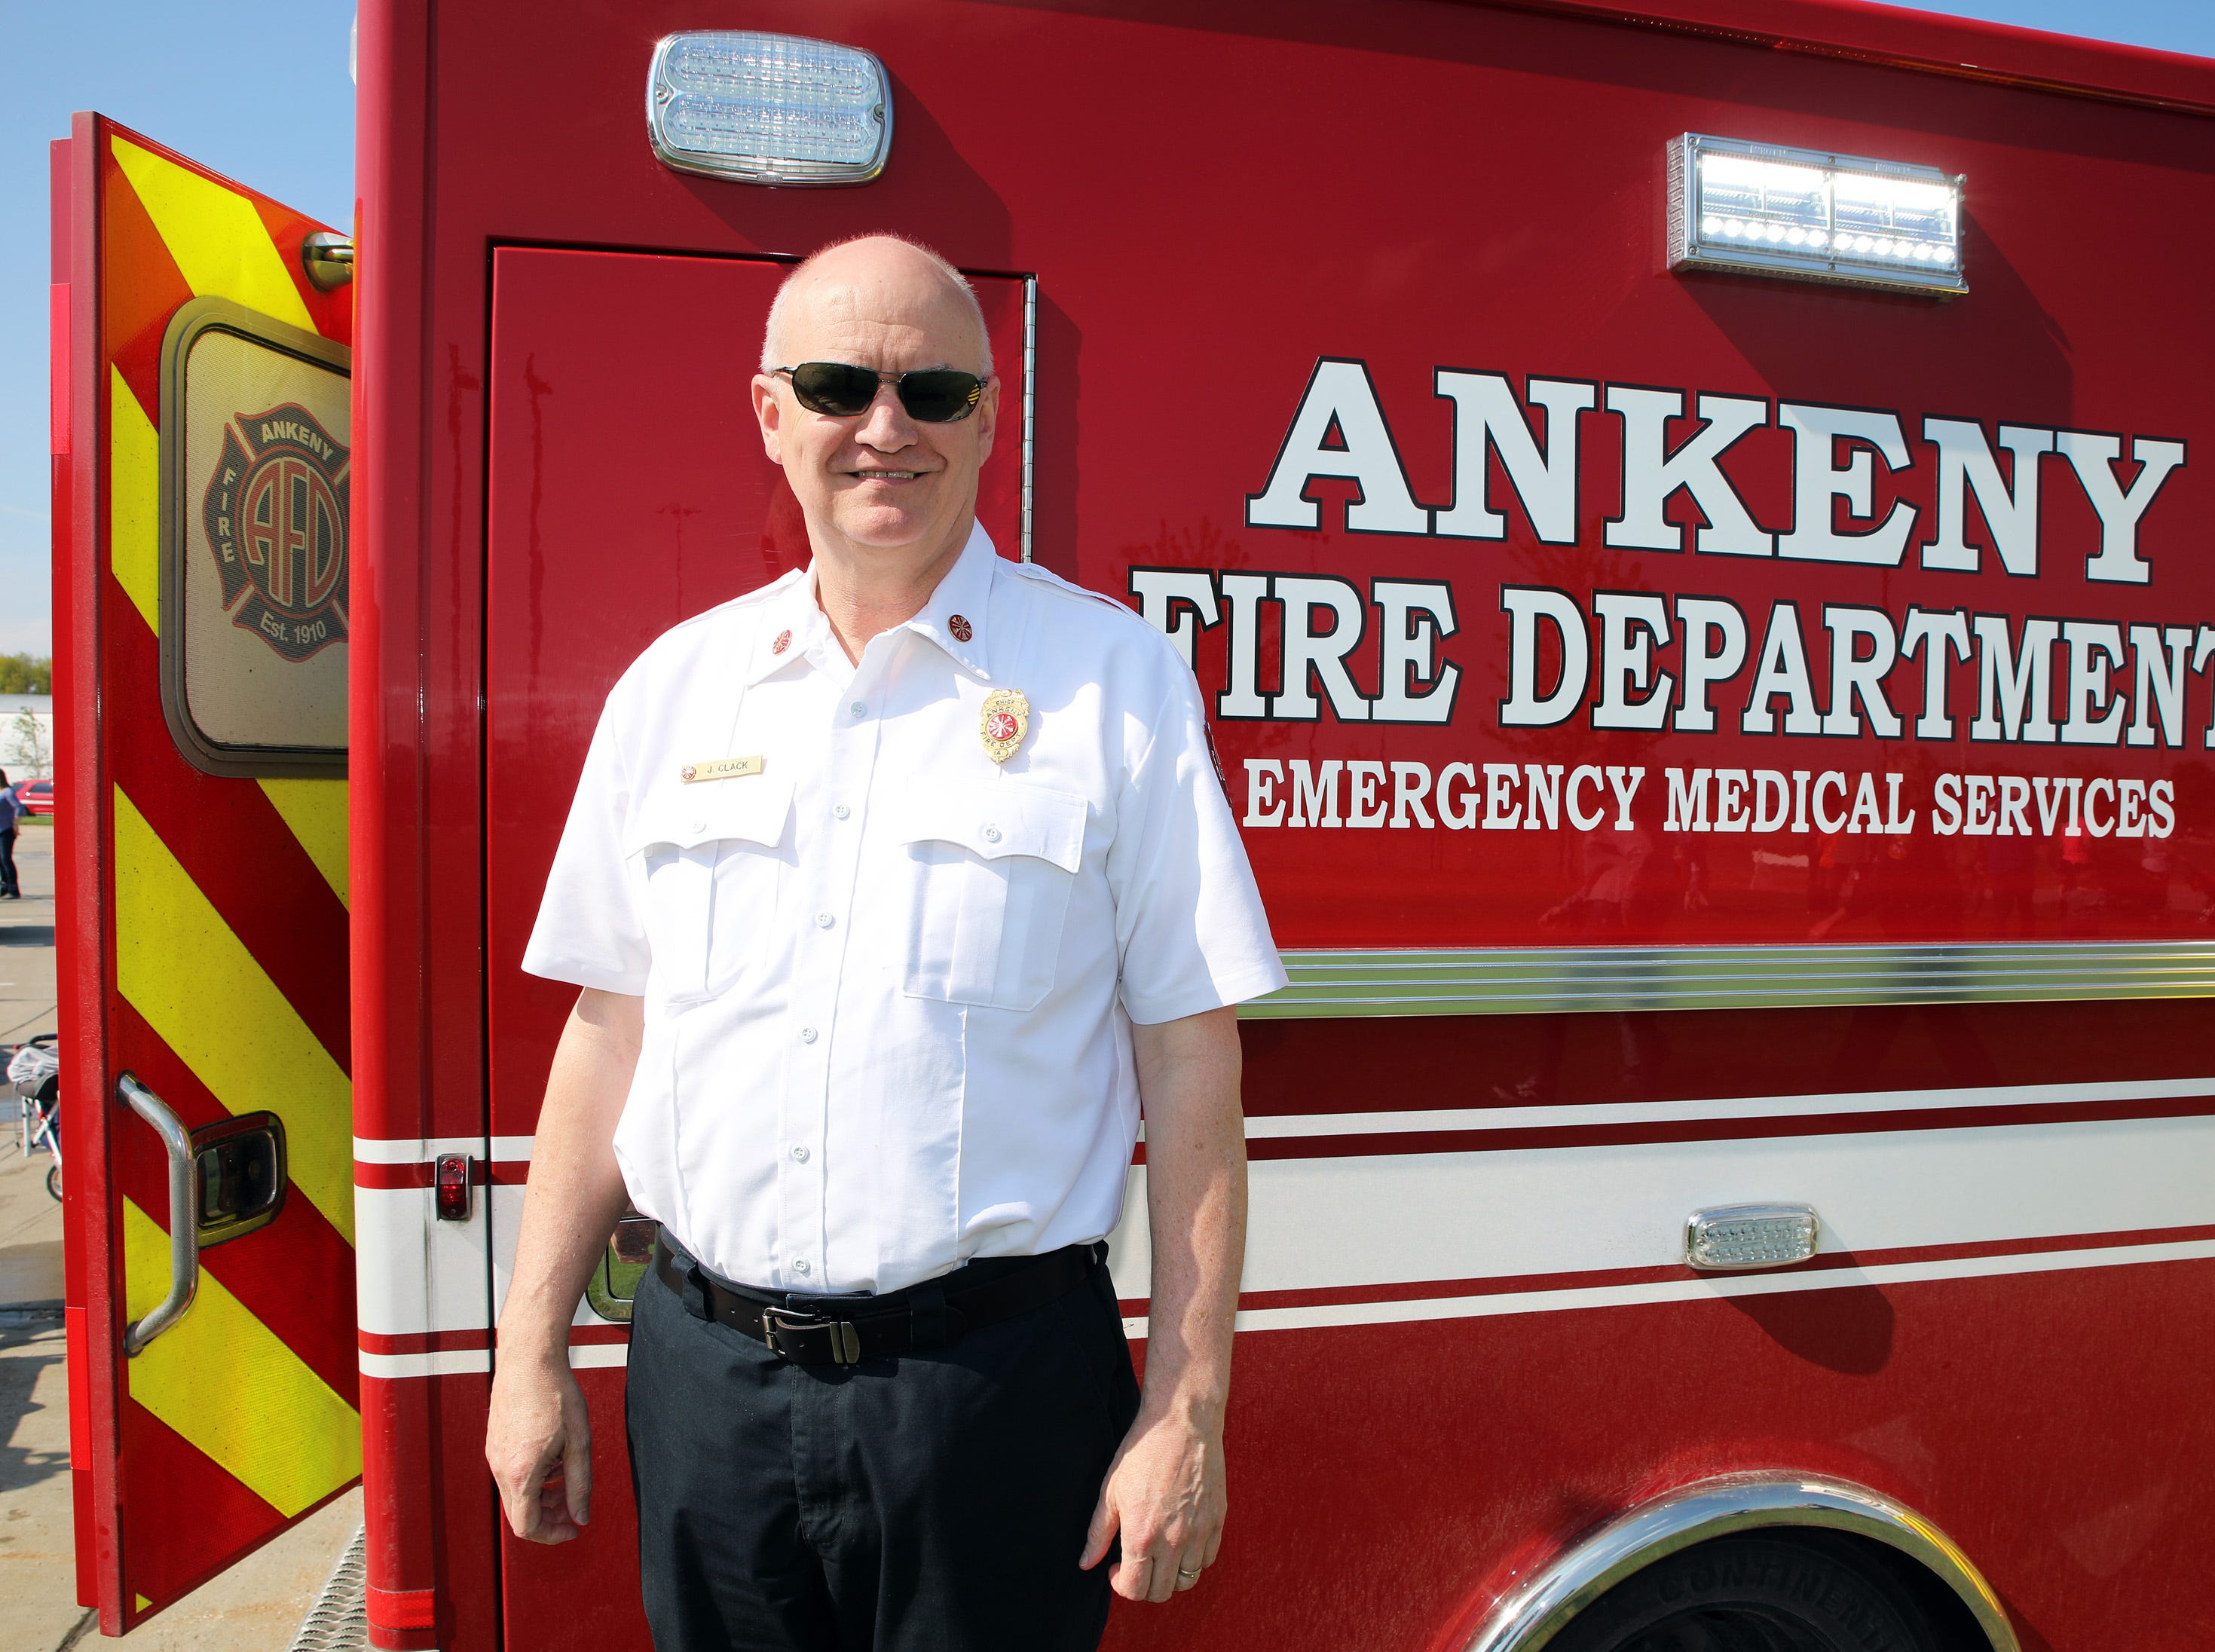 Ankeny Fire Chief James Clack stops by at the Ankeny Police Week Community Picnic on Tuesday, May 14, 2019 at the Ankeny Police Headquarters located at 411 SW Ordnance Road. The event featured a tour of the police station, magician Jonathon May, free Chick Fil-A sandwiches for the first 1,000 guests, free Kona Ice, temporary tattoos, and a great opportunity to meet the officers who protect and serve the city of Ankeny.